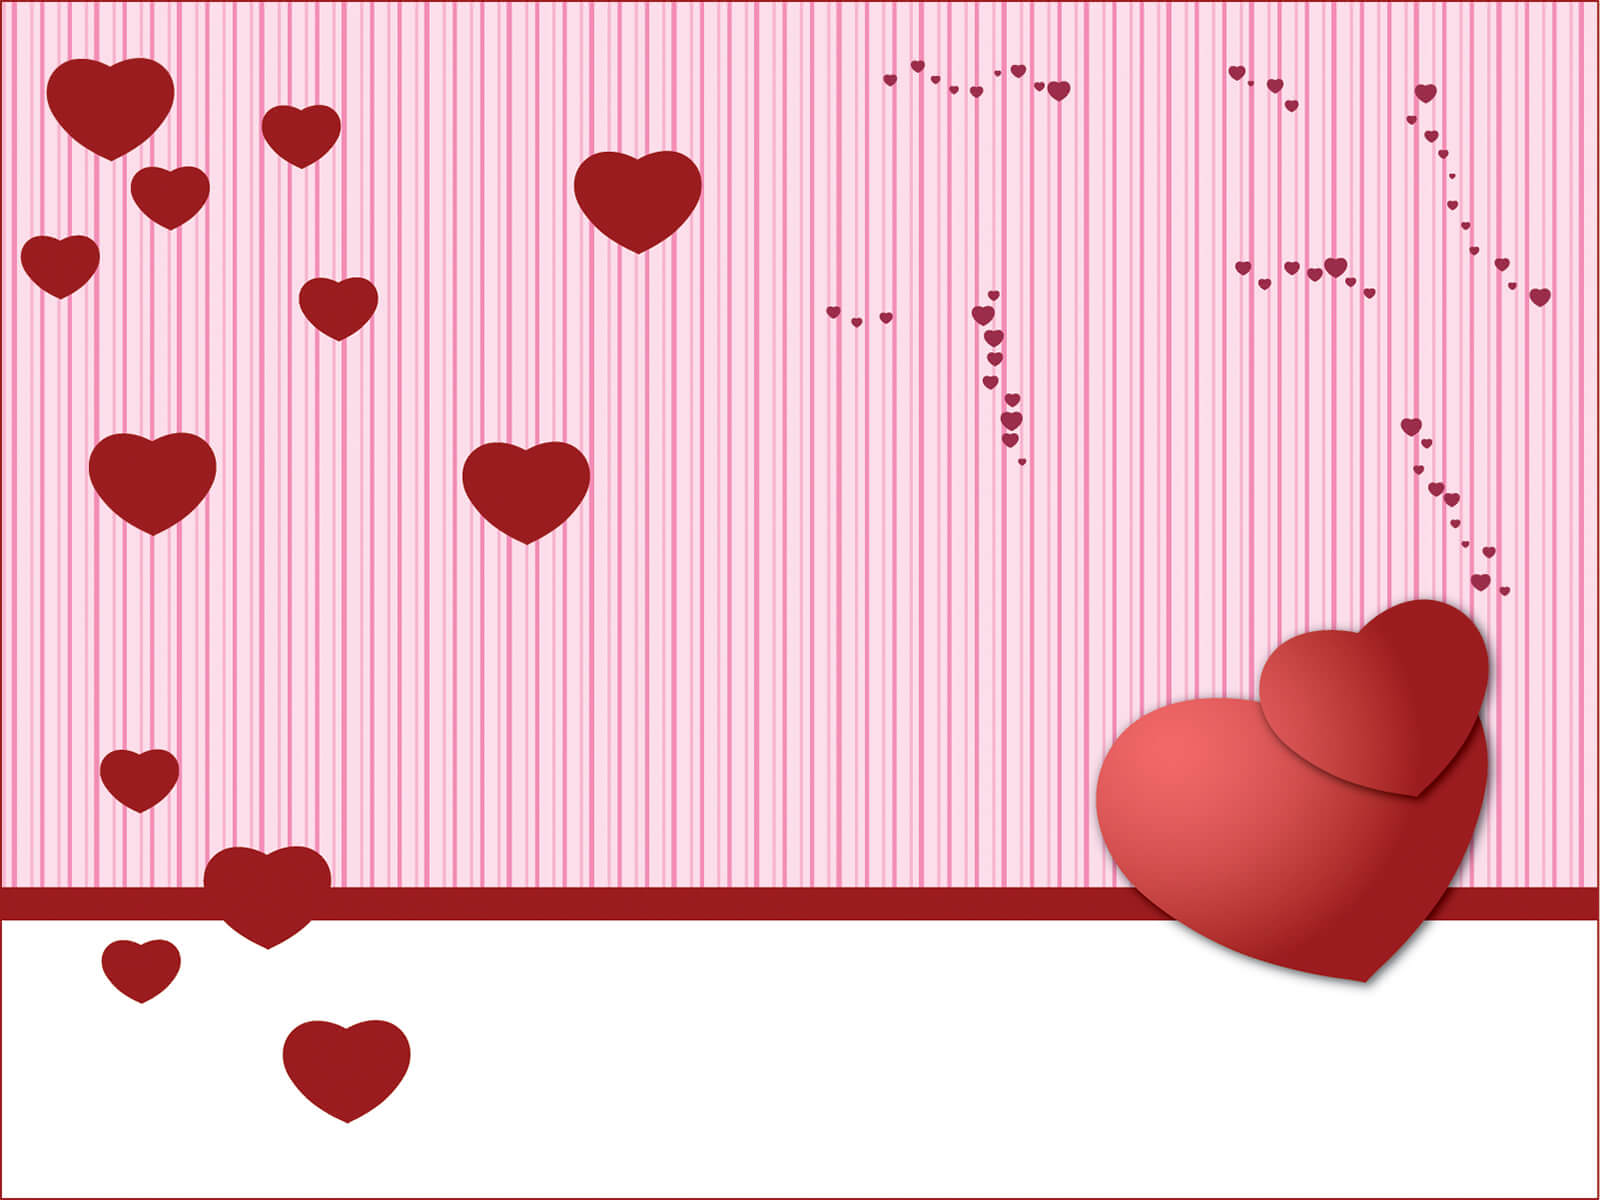 Valentine Powerpoint - Free Ppt Backgrounds And Templates pertaining to Valentine Powerpoint Templates Free